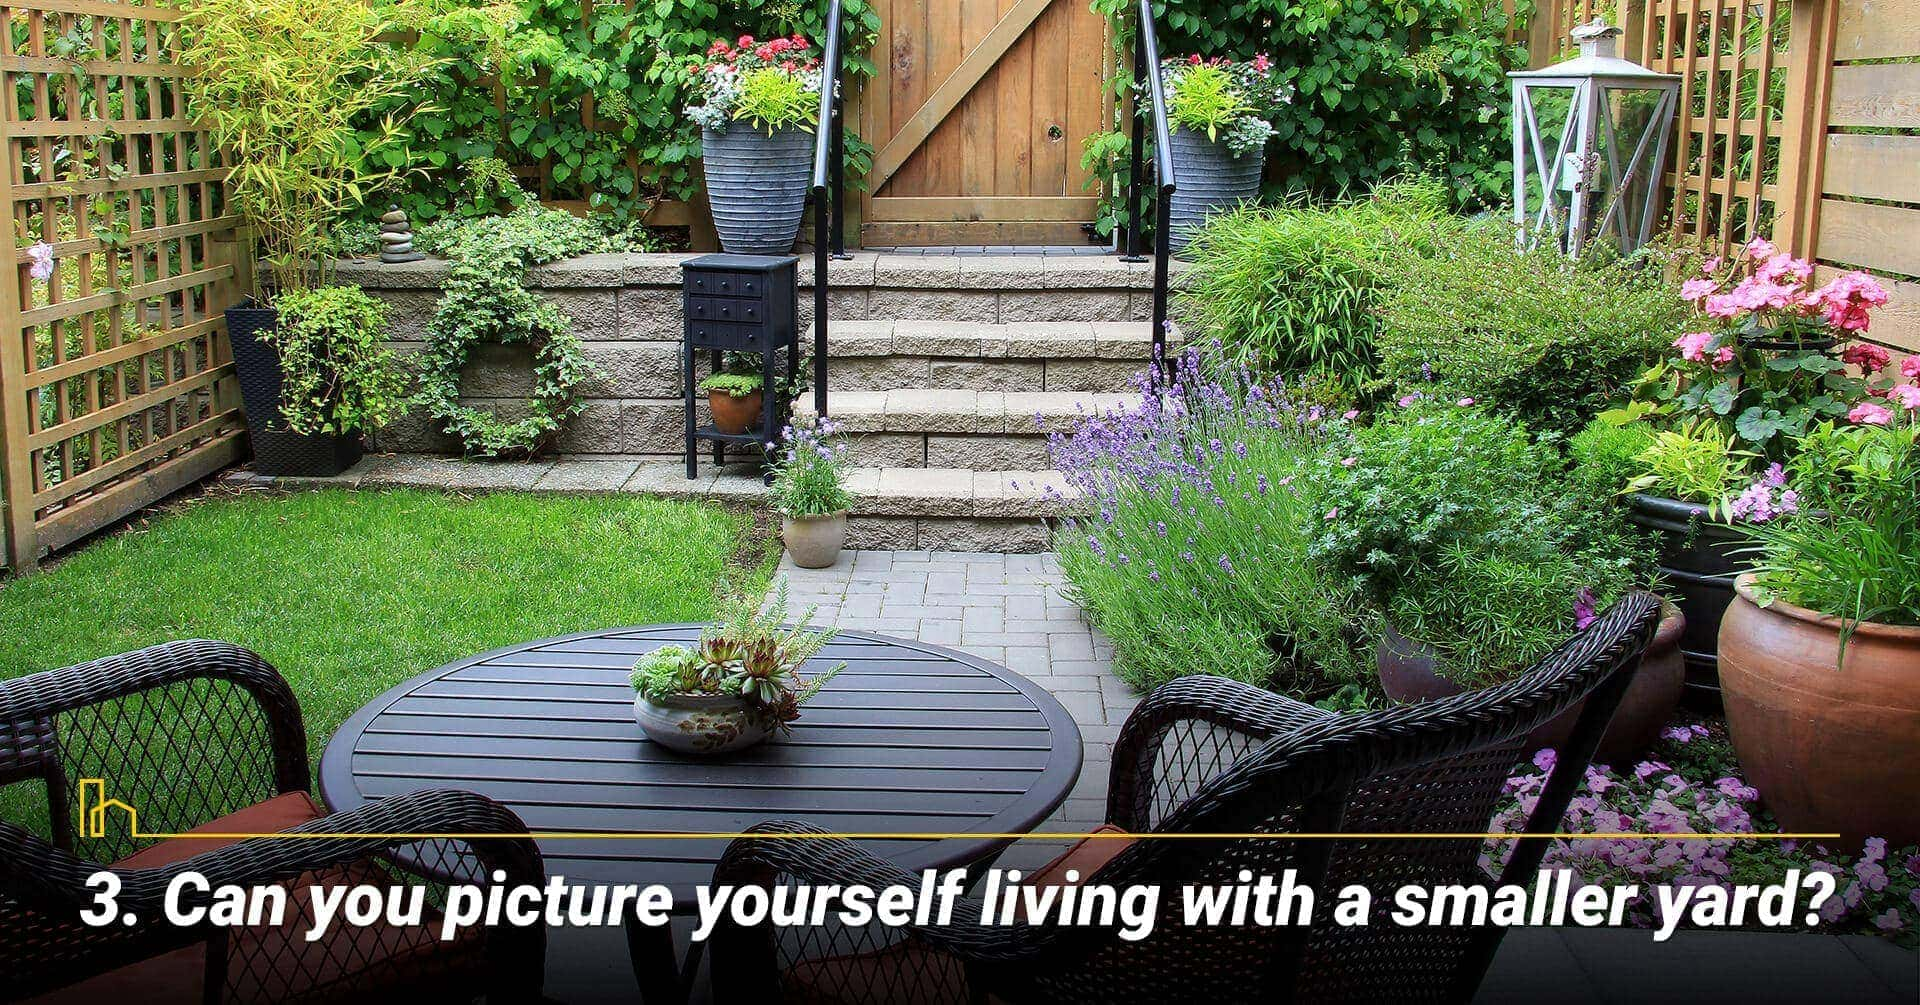 Can you picture yourself living with a smaller yard?